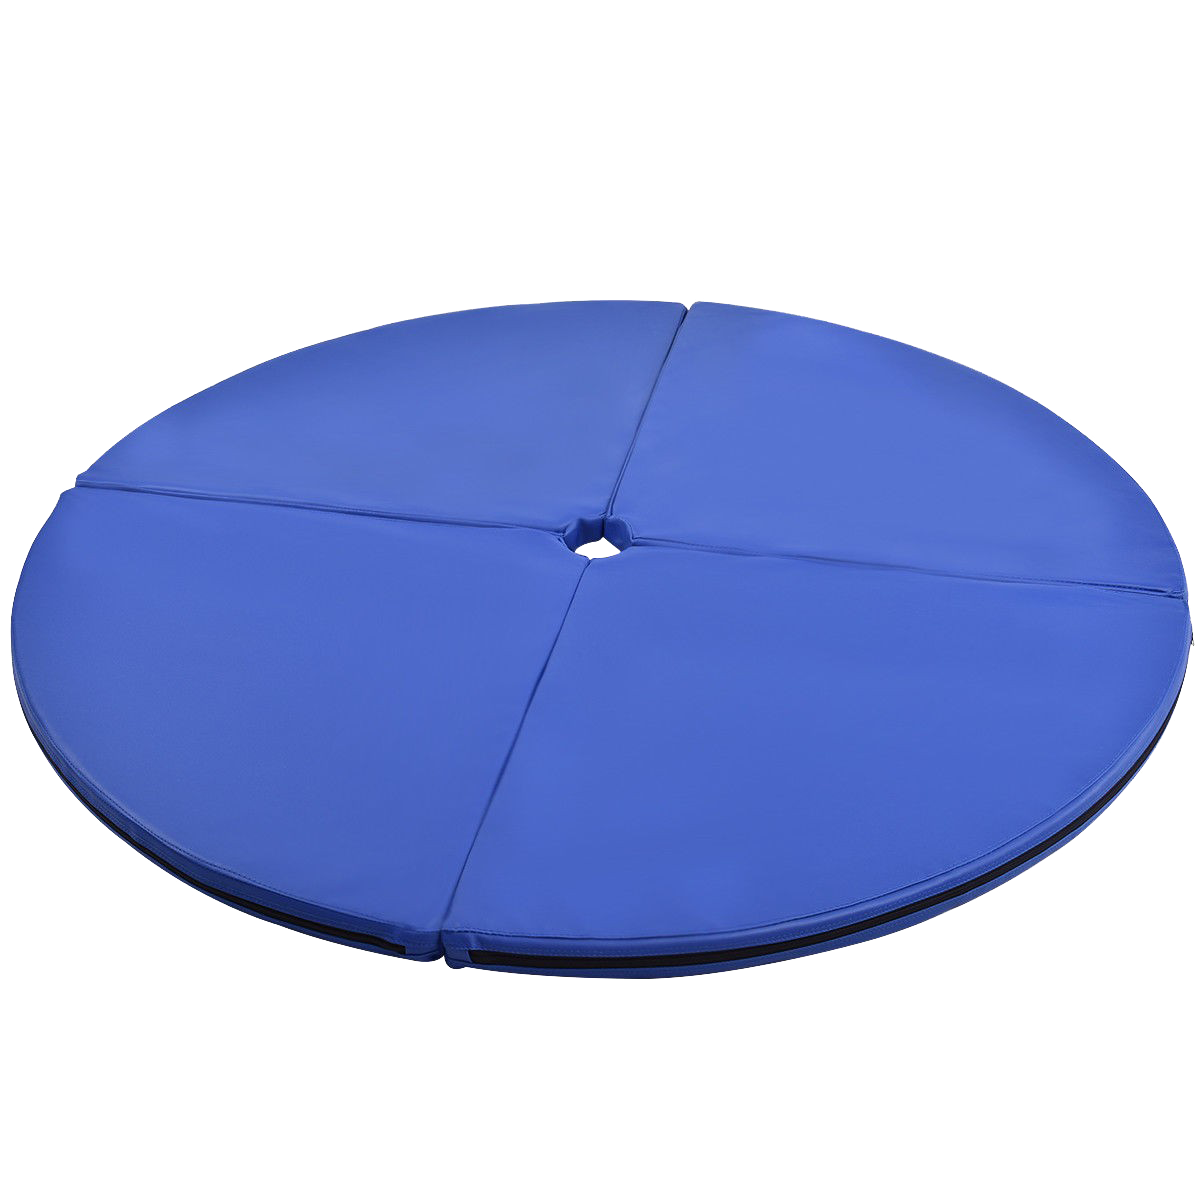 Foldable Pole Dance Yoga Exercise Safety Cushion Mat - 2 Inches - Uplift Active